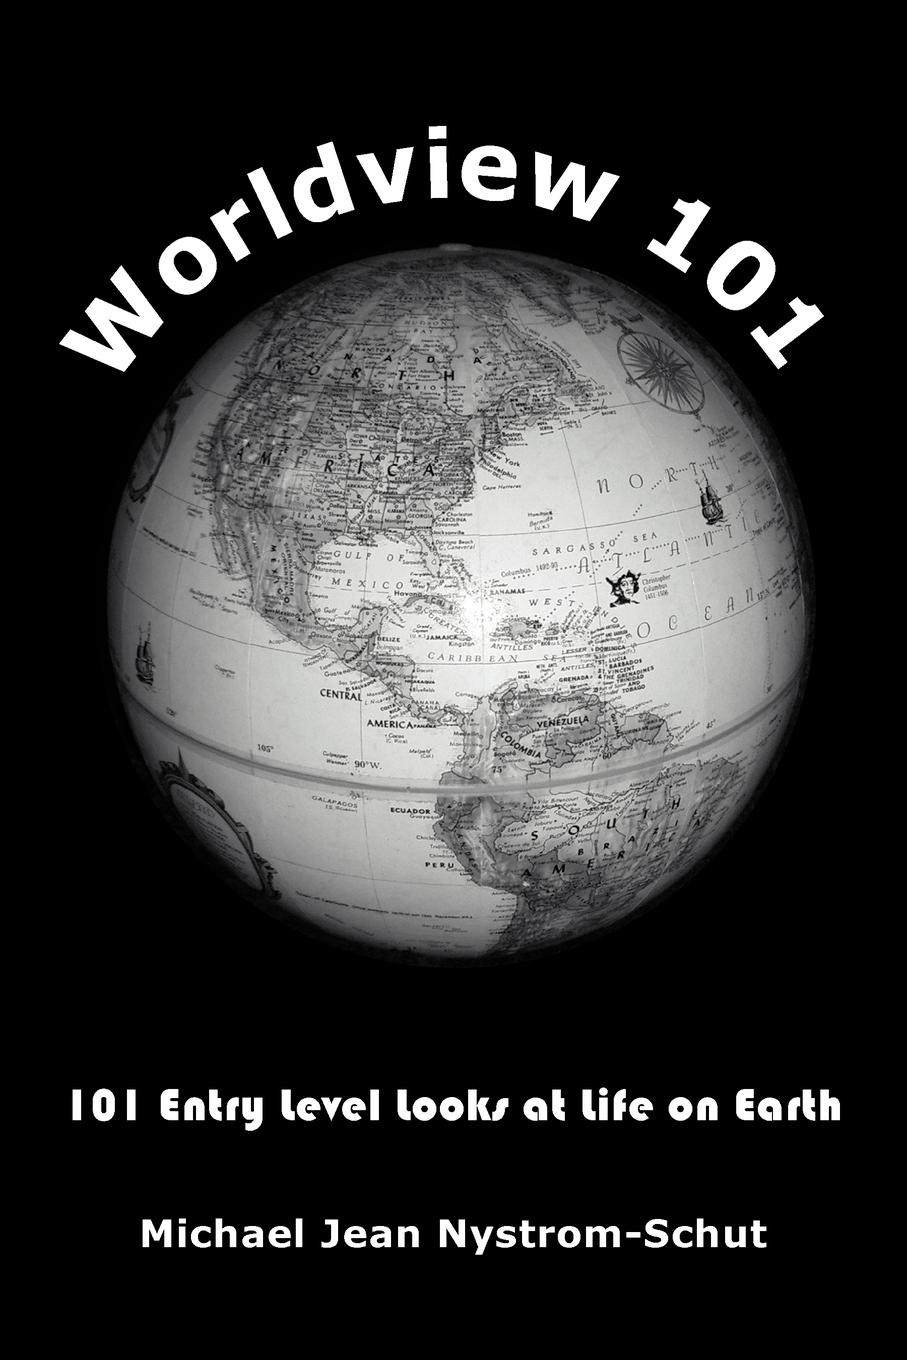 Michael Jean Nystrom-Schut Worldview 101. 101 Entry Level Looks at Life on Earth jens brakenhoff life as we know it